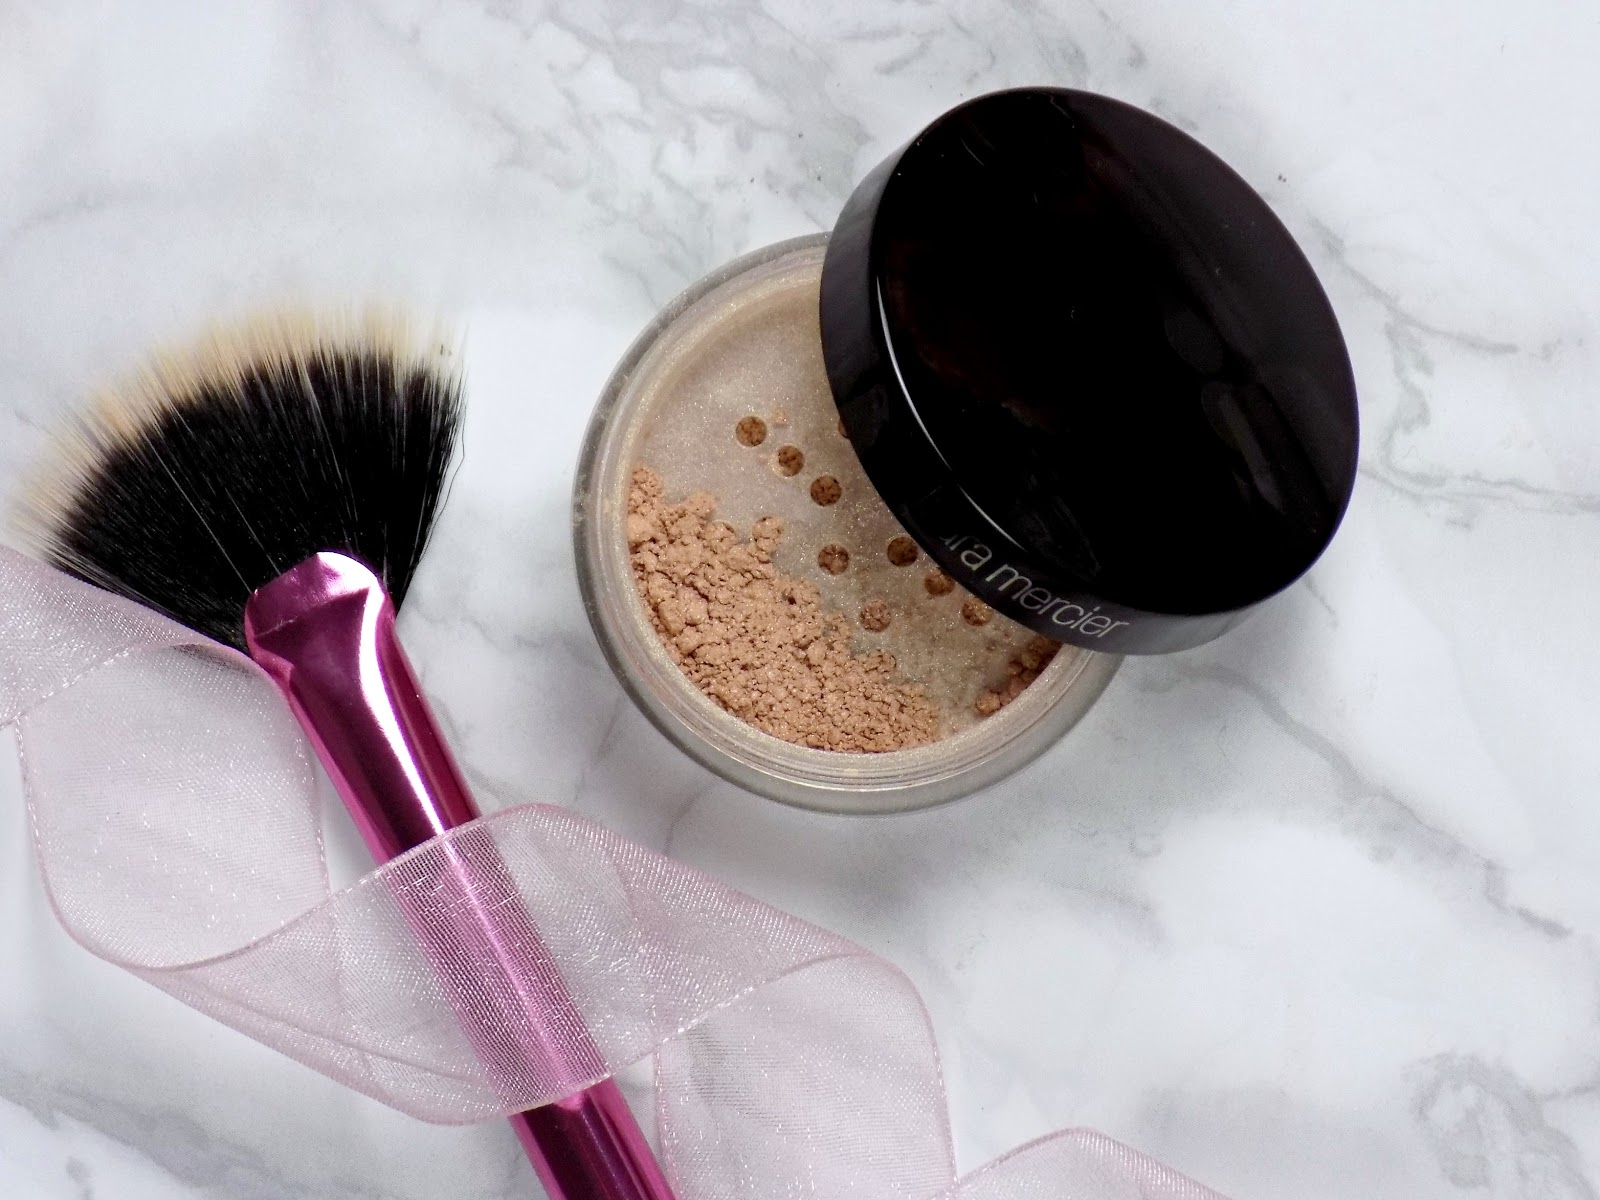 Laura Mercier Illuminating Powder in Candlelight